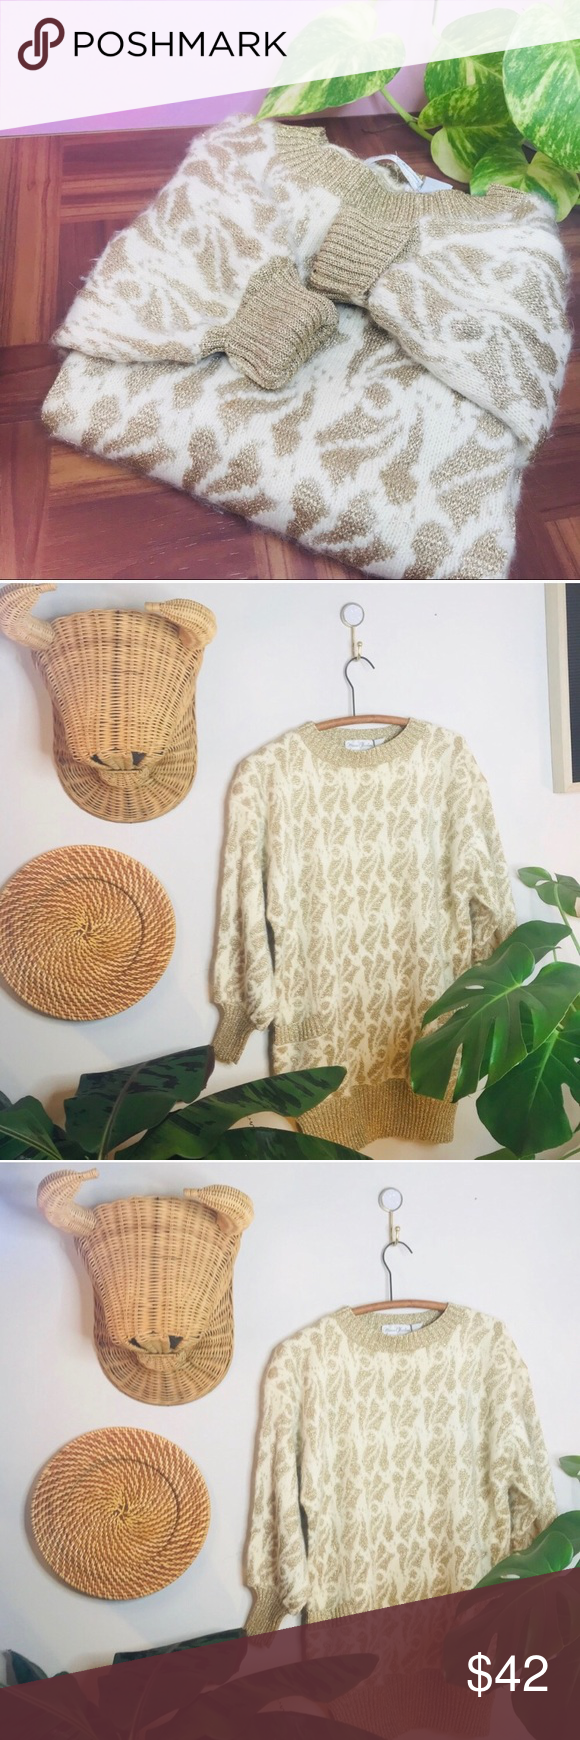 vtg vsco 80s Gold Shimmer Oversized Sweater Tunic Vintage Retro 80's Gold Shimmer Oversized Sweater Tunic  • no tags but would fit a medium or sma...